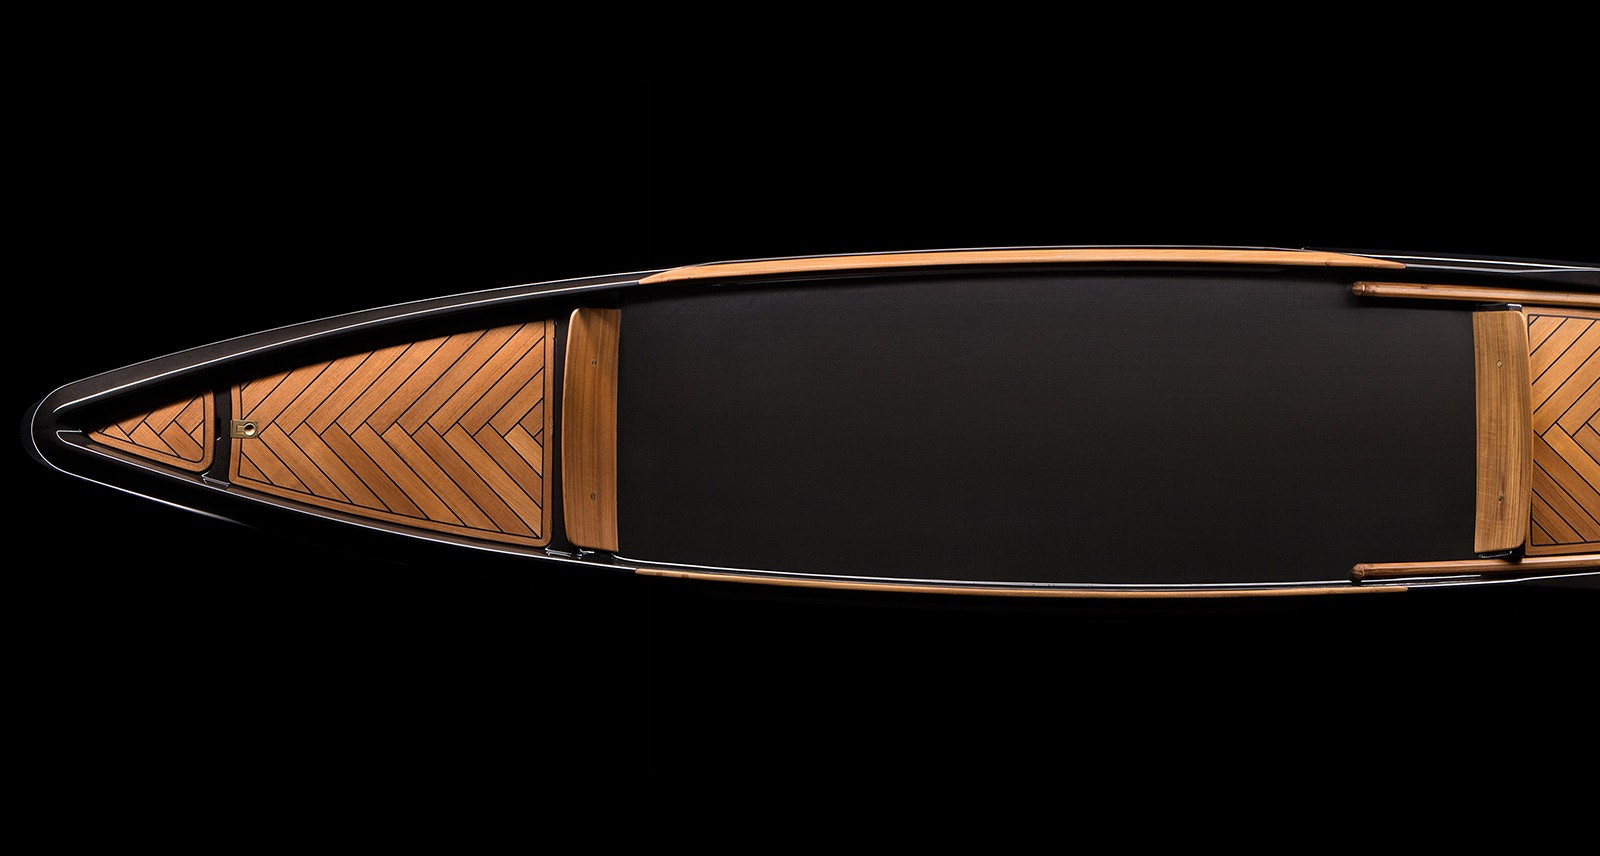 This Beautiful Monocoque Paddle Canoe Will Make You a Morning Person